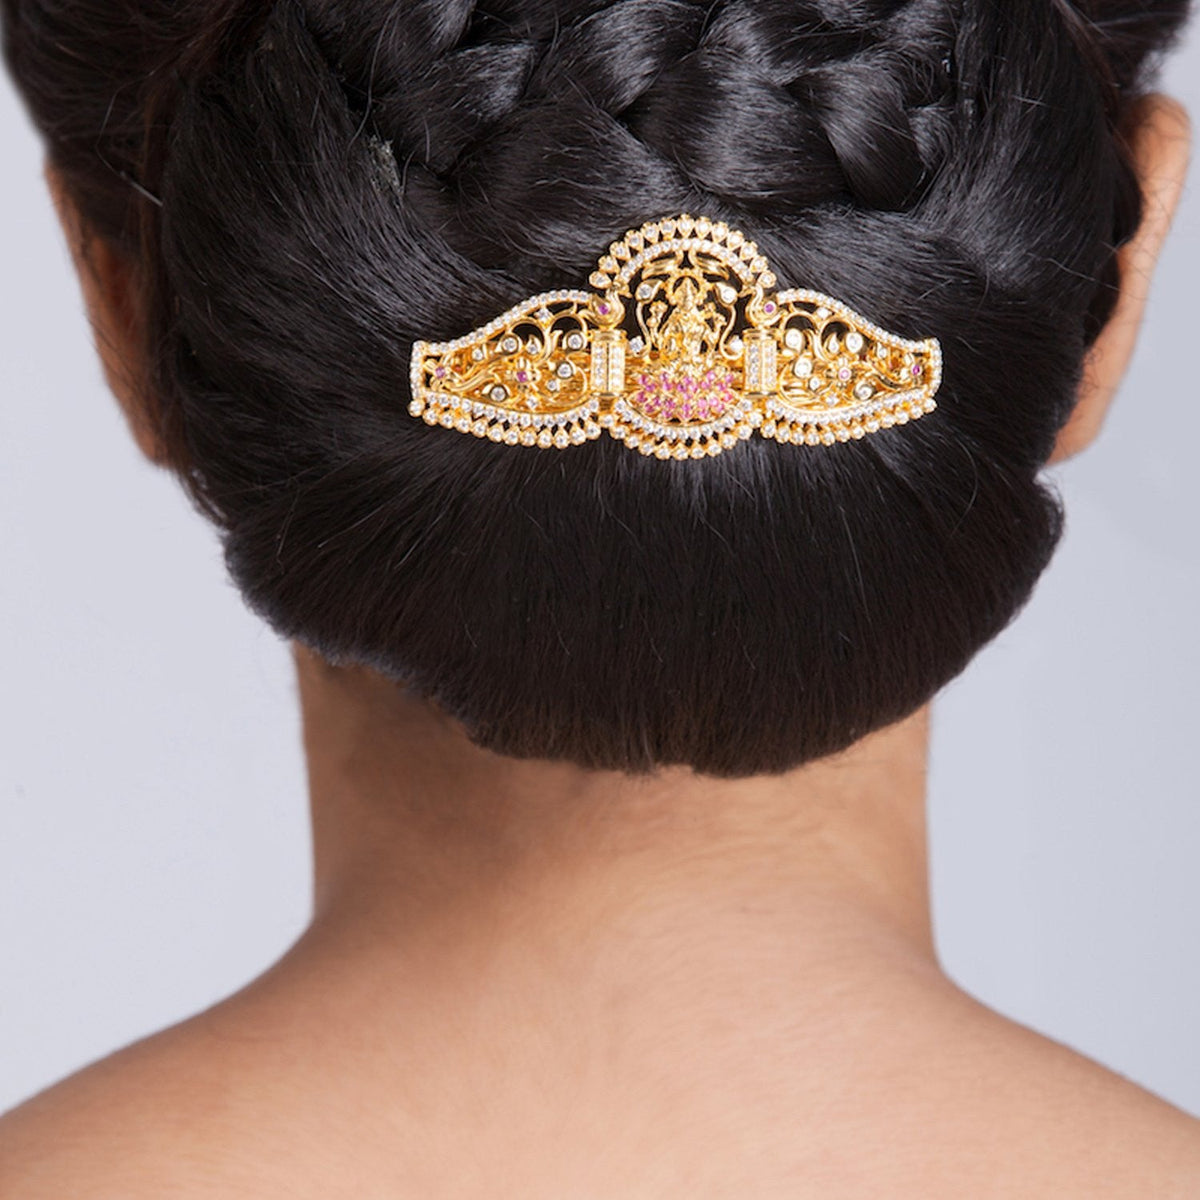 Rama Antique Hair Clip